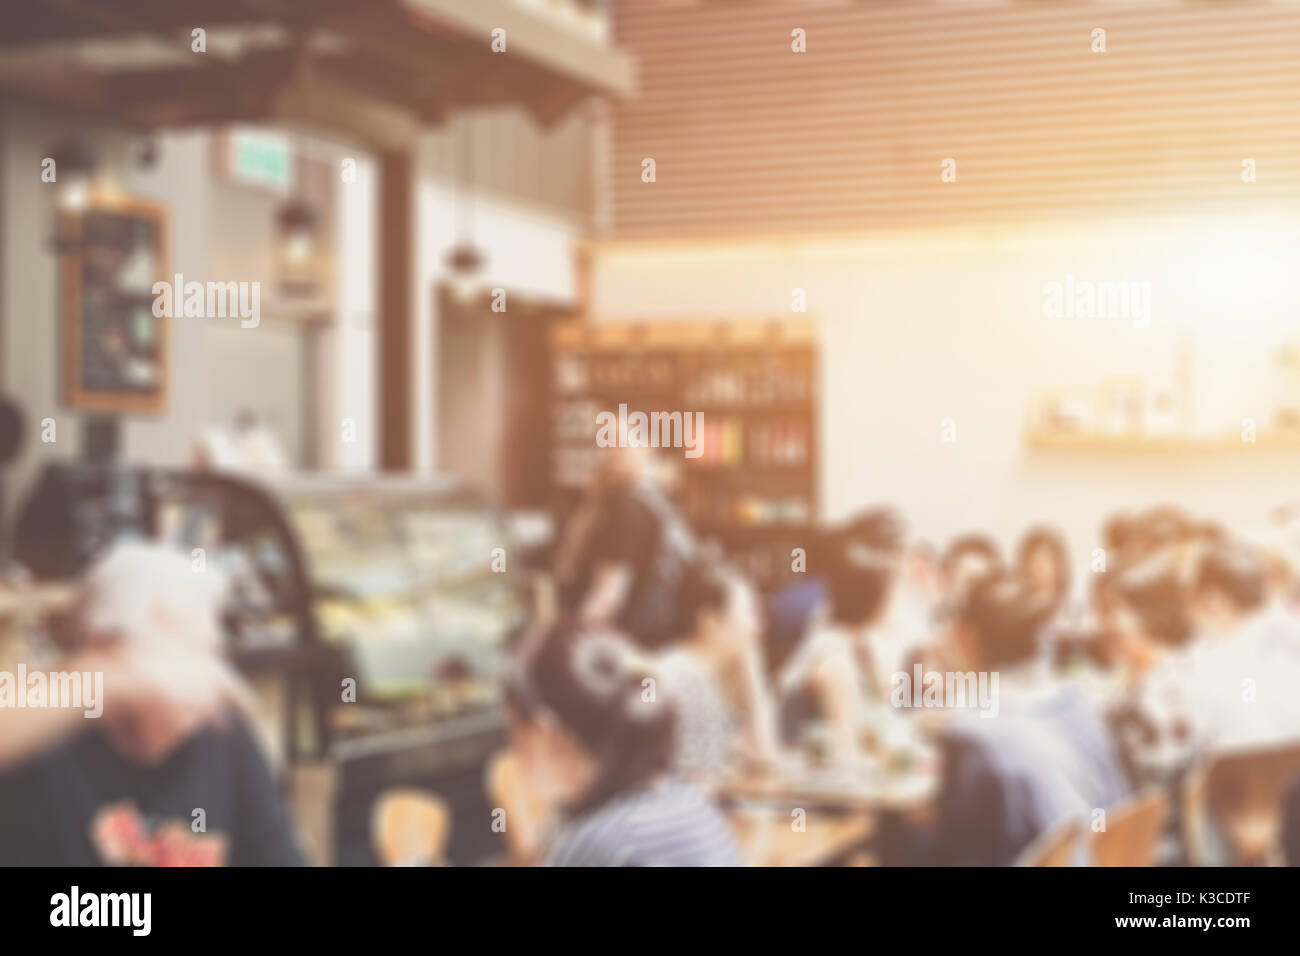 Blurred background made with Vintage Tones,Coffee shop blur background - Stock Image